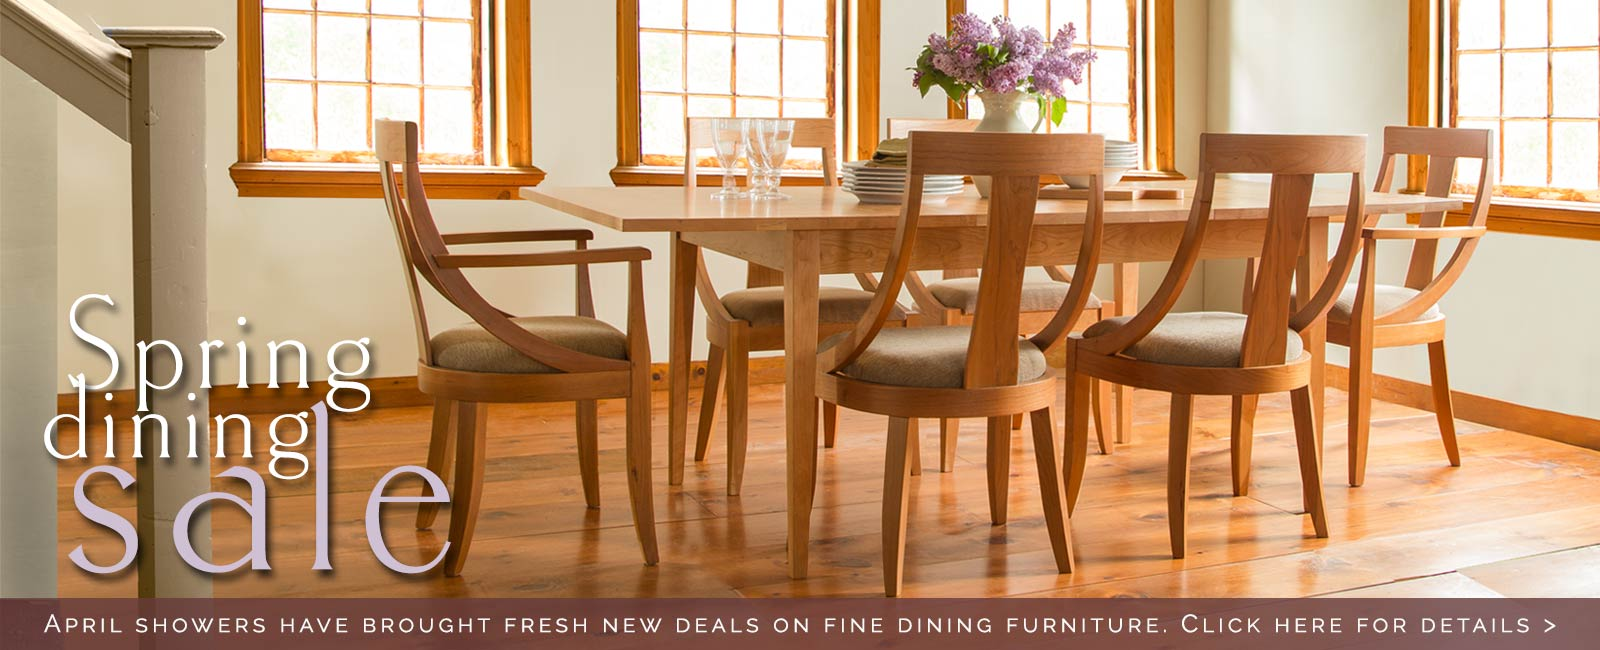 American Made Dining Room Furniture Sale